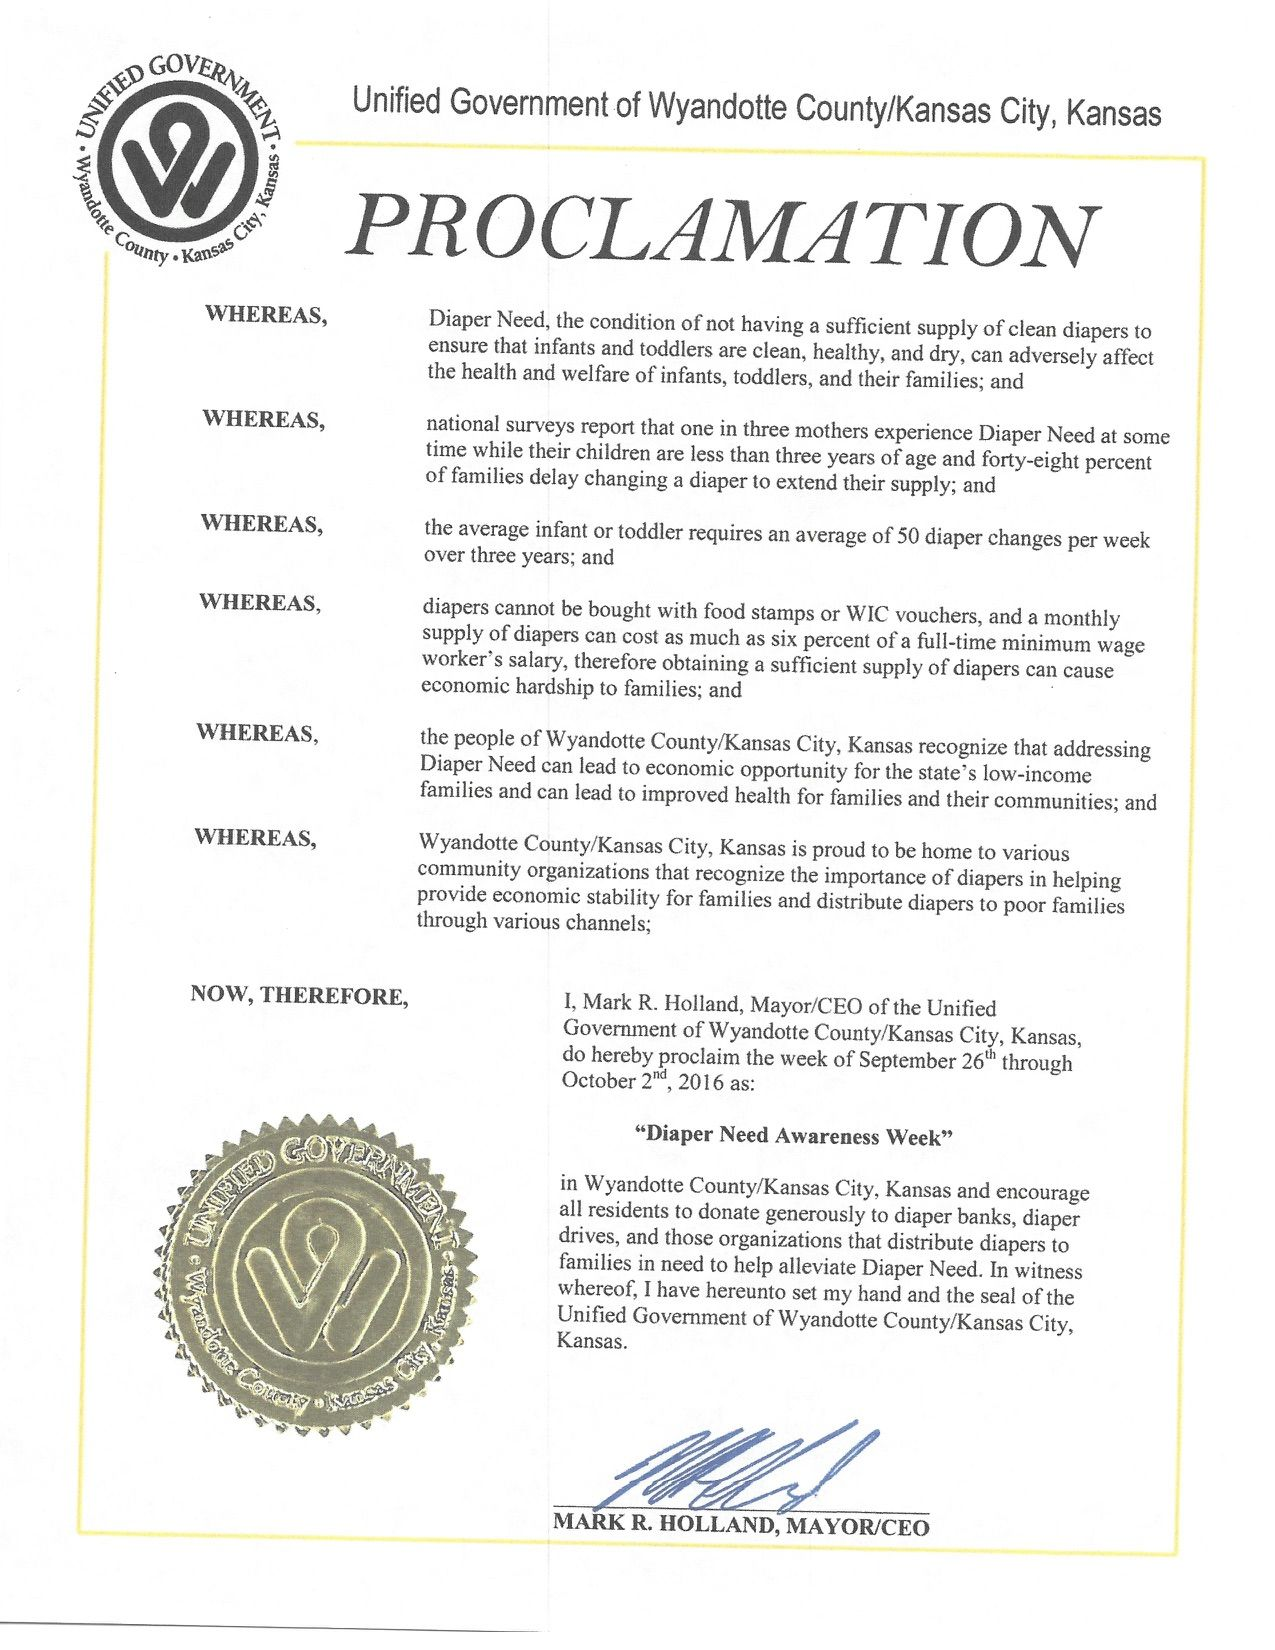 UNIFIED GOVT KANSAS CITY, KS - Mayoral proclamation recognizing Diaper Need Awareness Week (Sep. 26-Oct. 2, 2016) #DiaperNeed Diaperneed.org